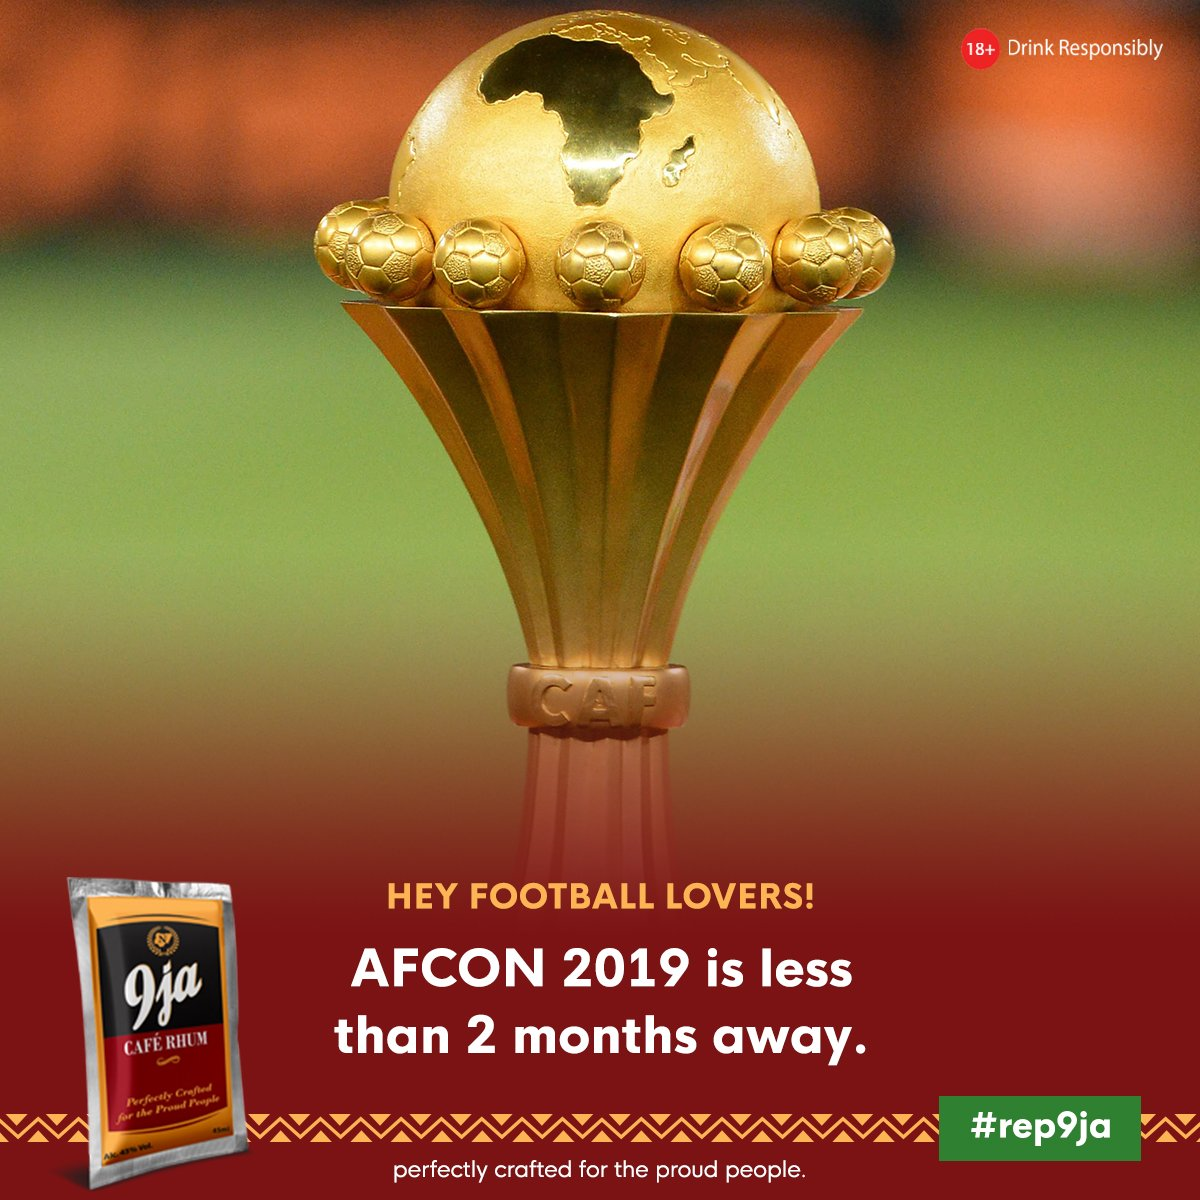 Looking forward to the 2019 Africa Cup of Nations coming up Friday, 7th June - Saturday, 30th June, 2019. Do you think Nigeria will win? #9jaFootball #9jaCafe #9jaCafeRhumpic.twitter.com/qZApCiHd94